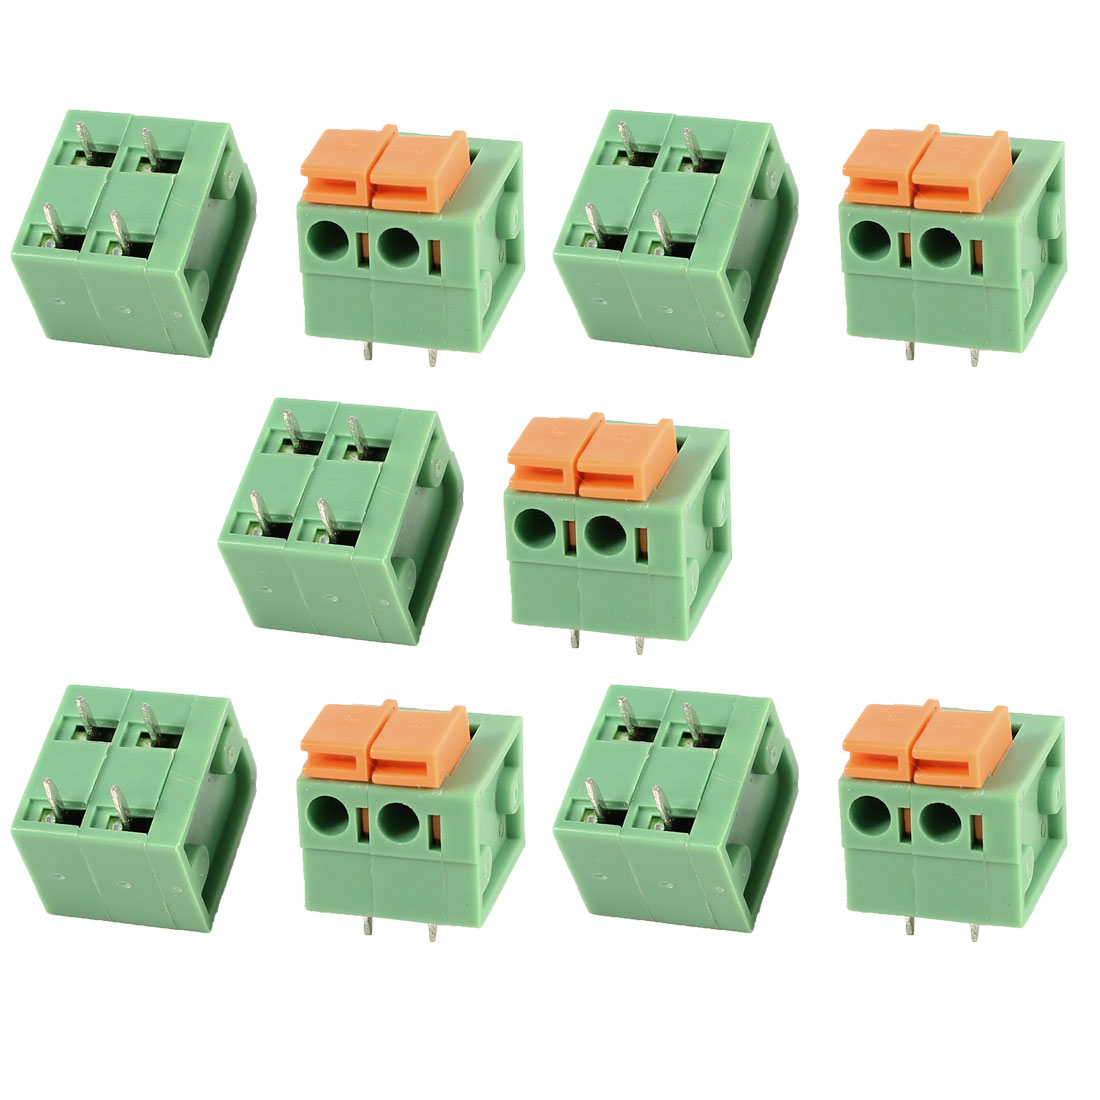 10 Pcs Green KF142R 2Position 5.08mm Pitch 4Pin Spring Terminal Blocks Connectors 300V 10A